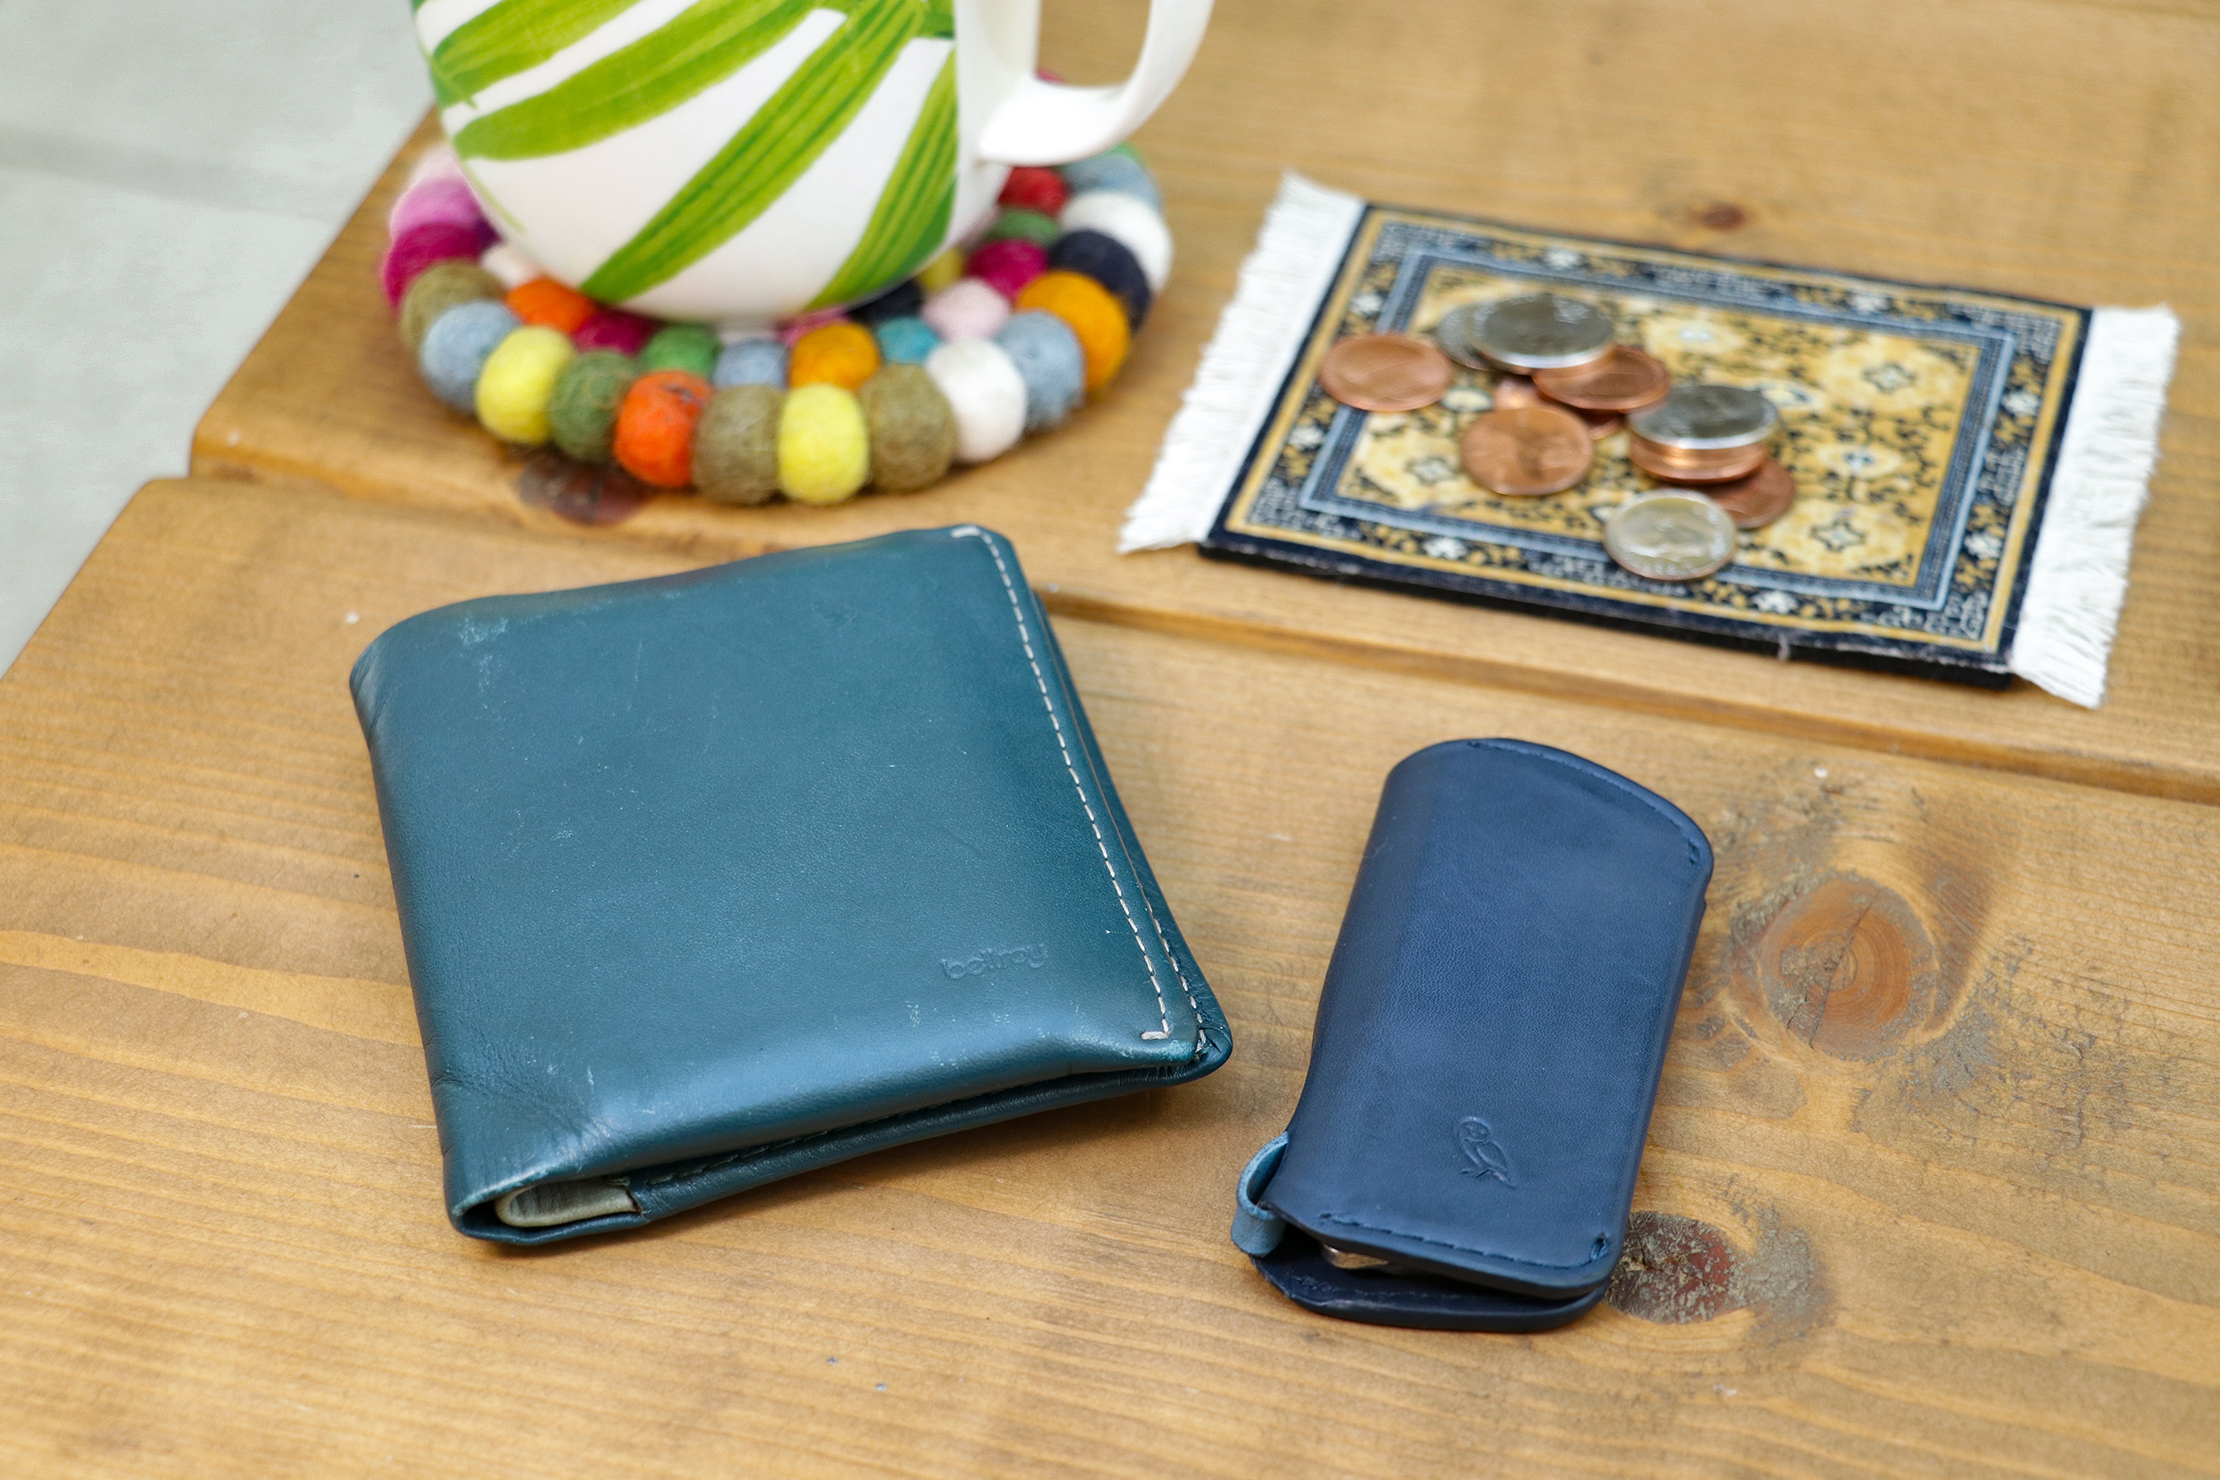 Bellroy Note Sleeve And Key Cover Plus